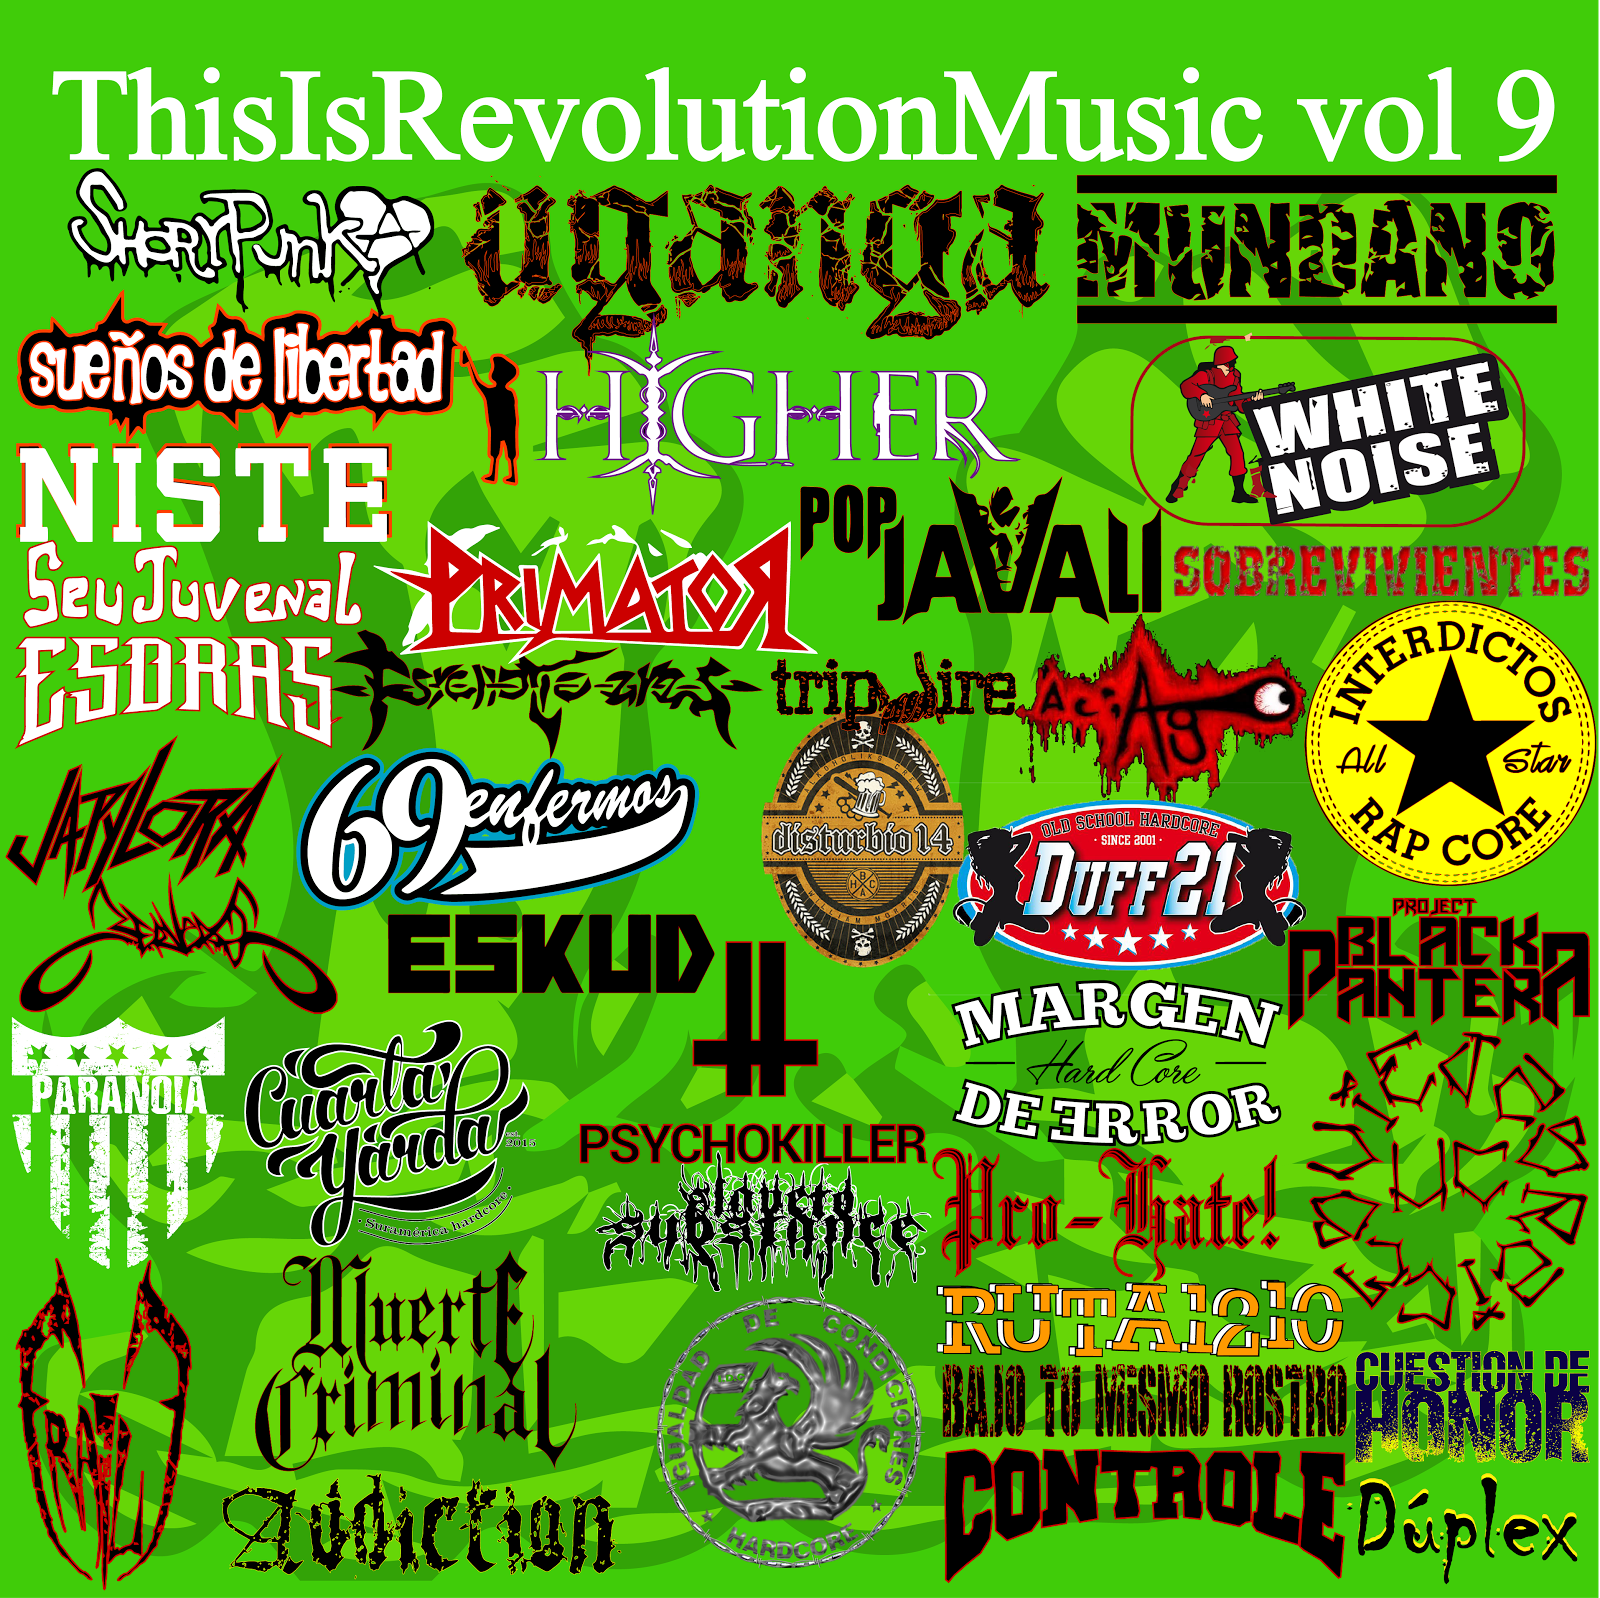 ThisIsRevolutionMusic vol 9